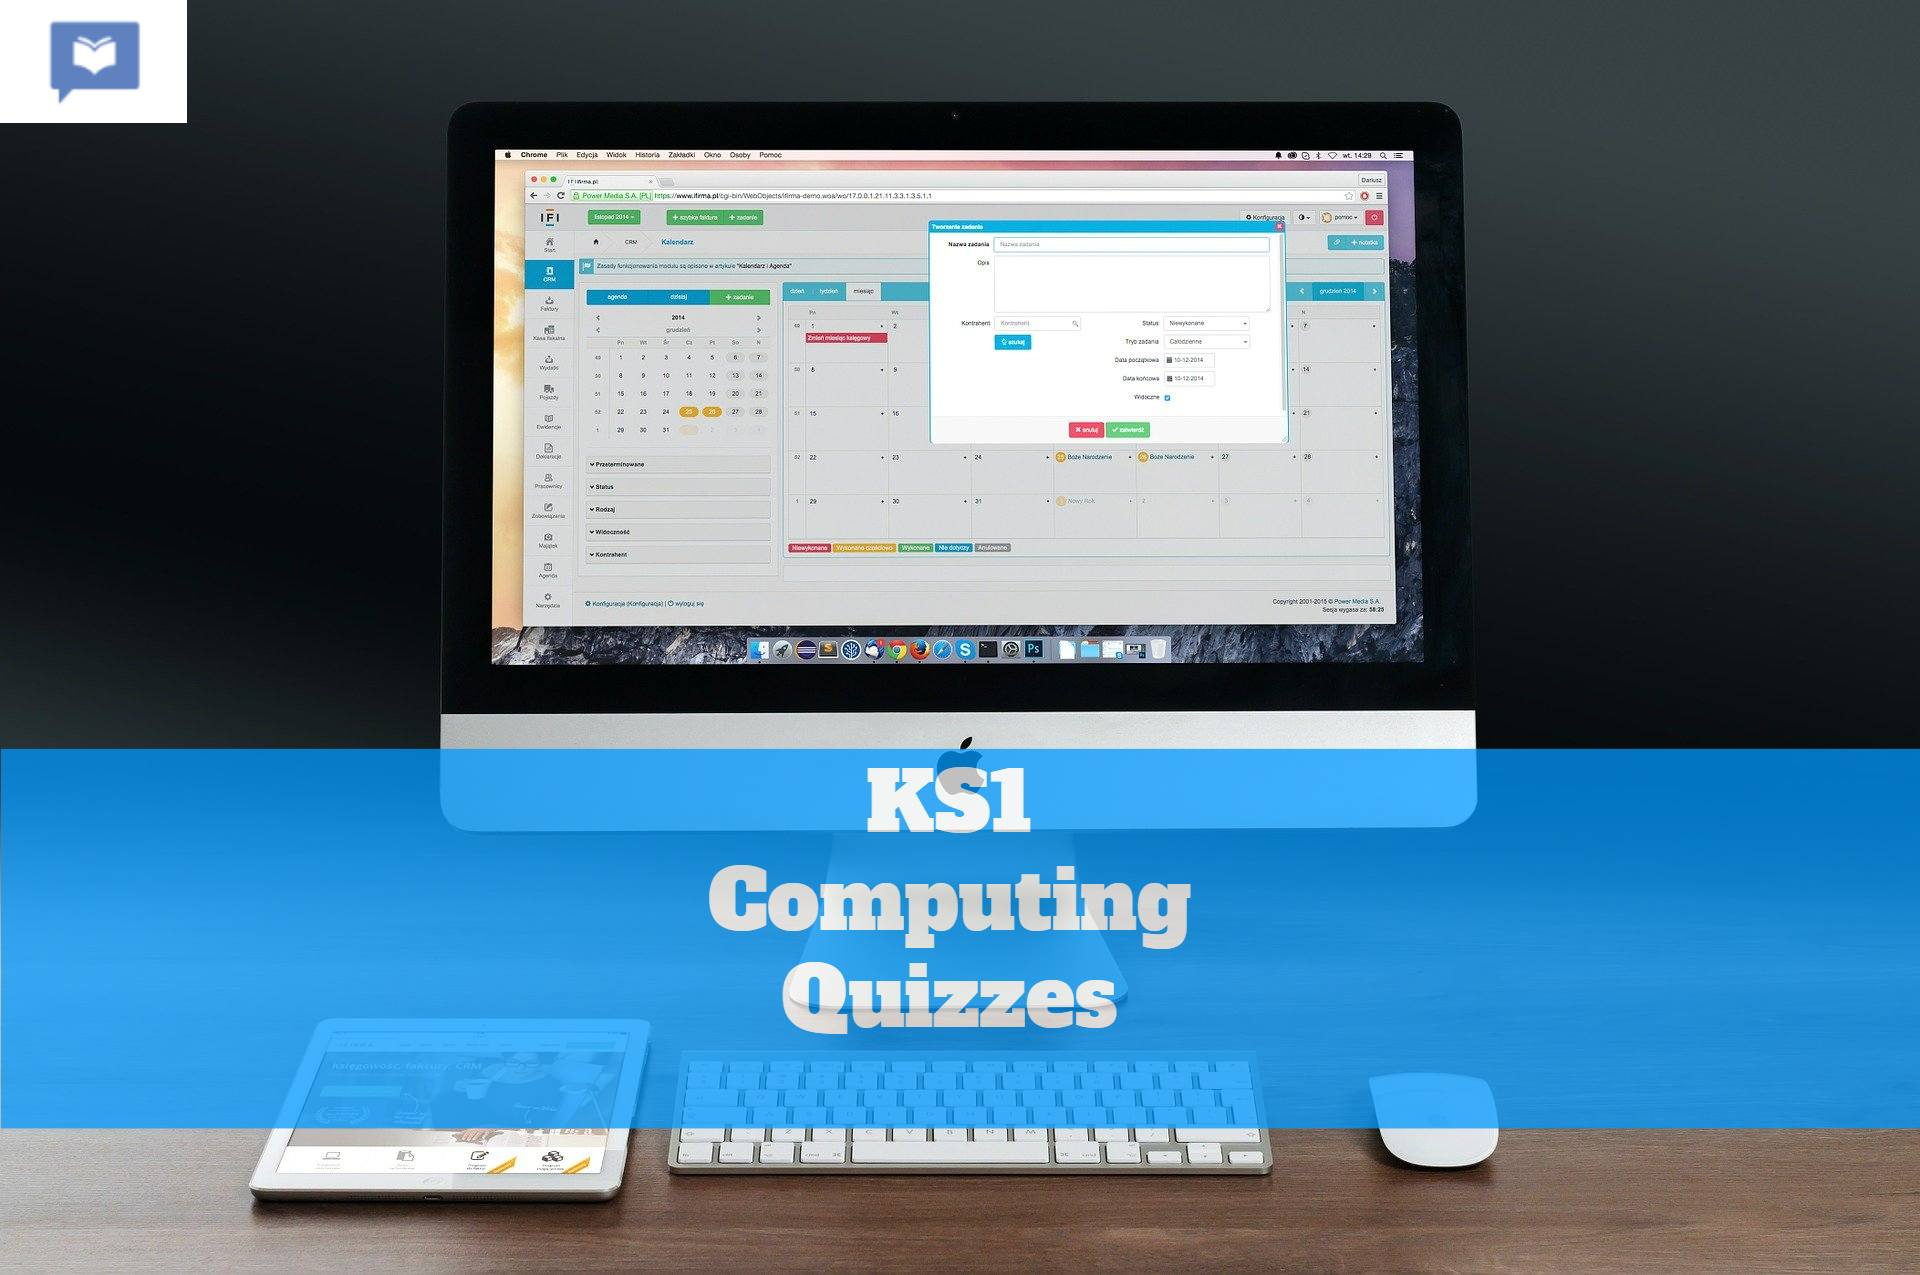 KS1 Computing Quizzes